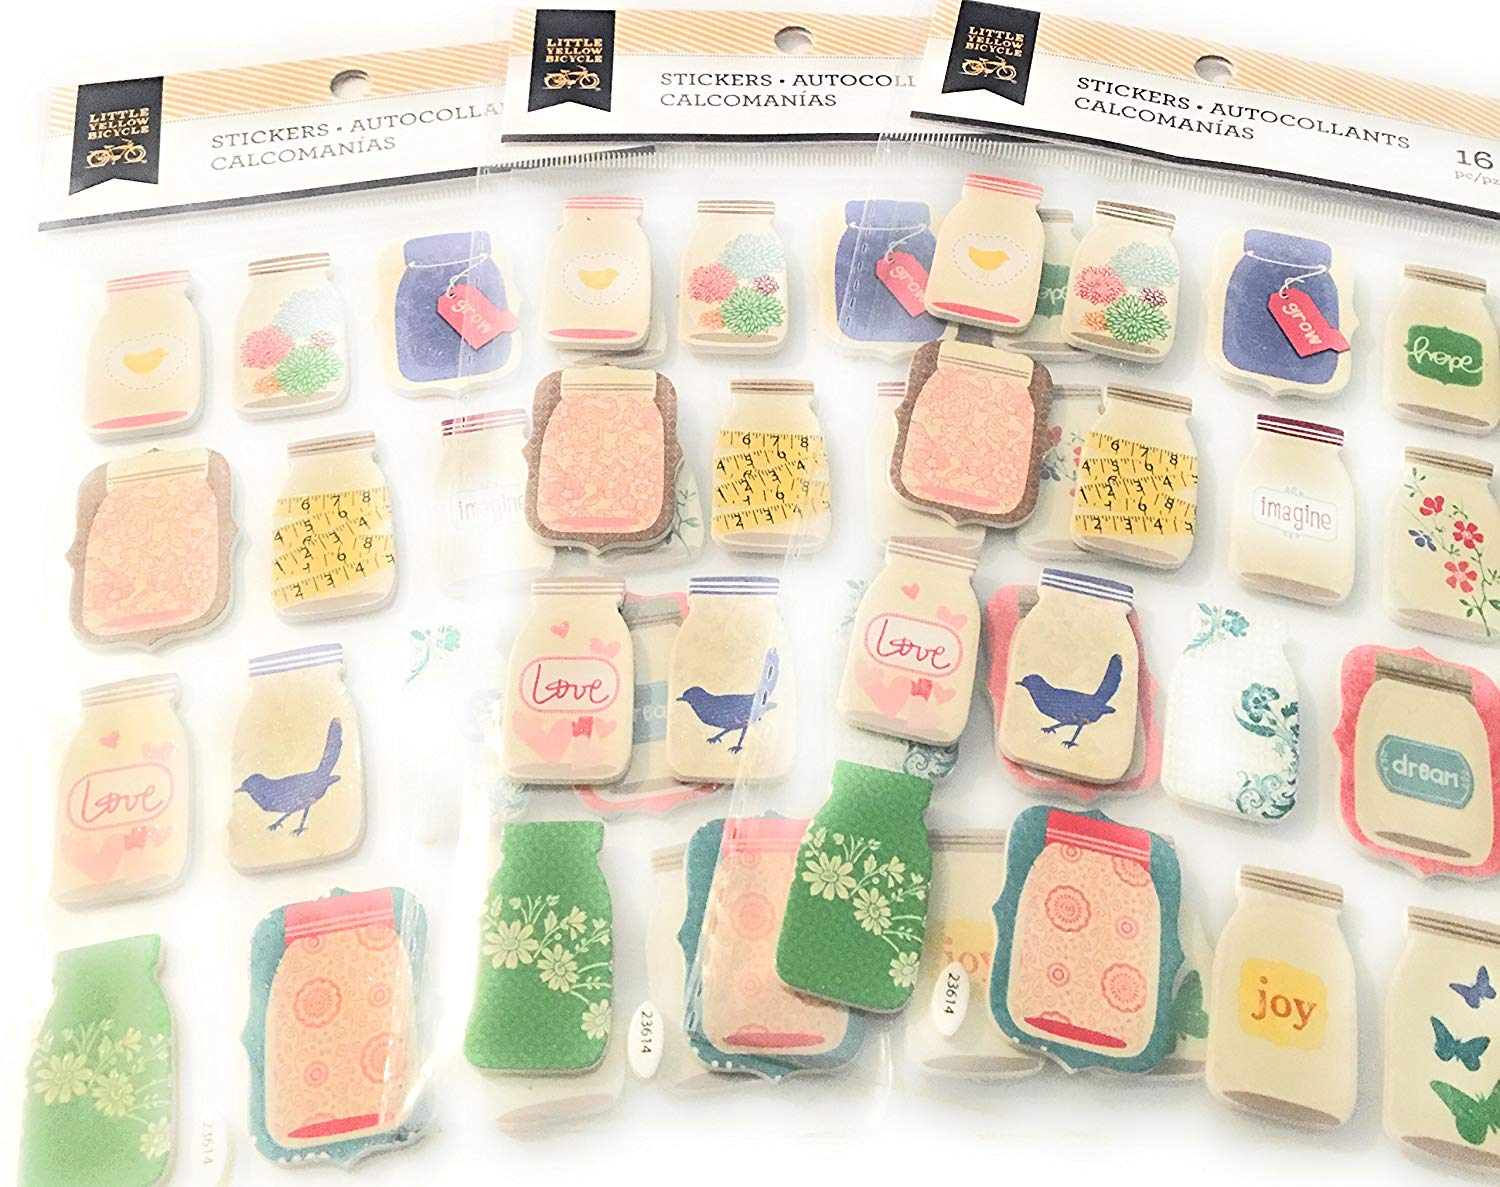 48 Pieces! Foam Jars 3-Dimensional Paper Craft Stickers Kit | Scrapbooking, Planners & More